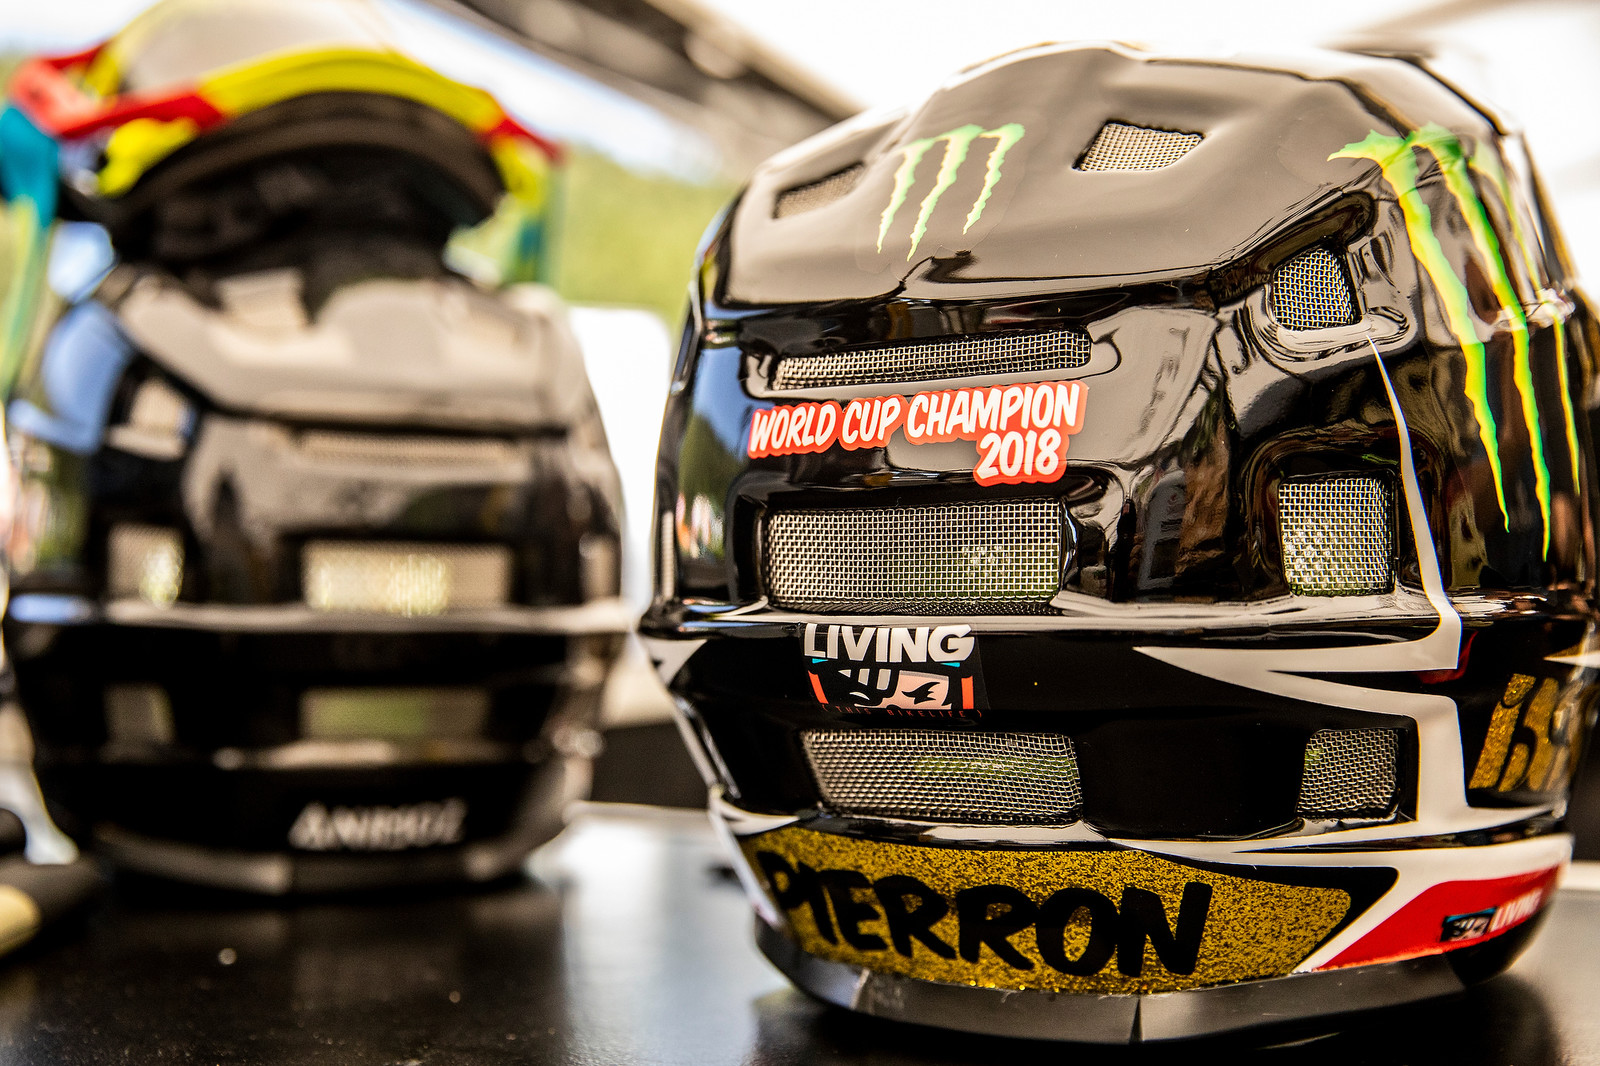 Amaury's New Helmet (and Sponsor!) - PIT BITS - La Bresse World Cup Downhill - Mountain Biking Pictures - Vital MTB